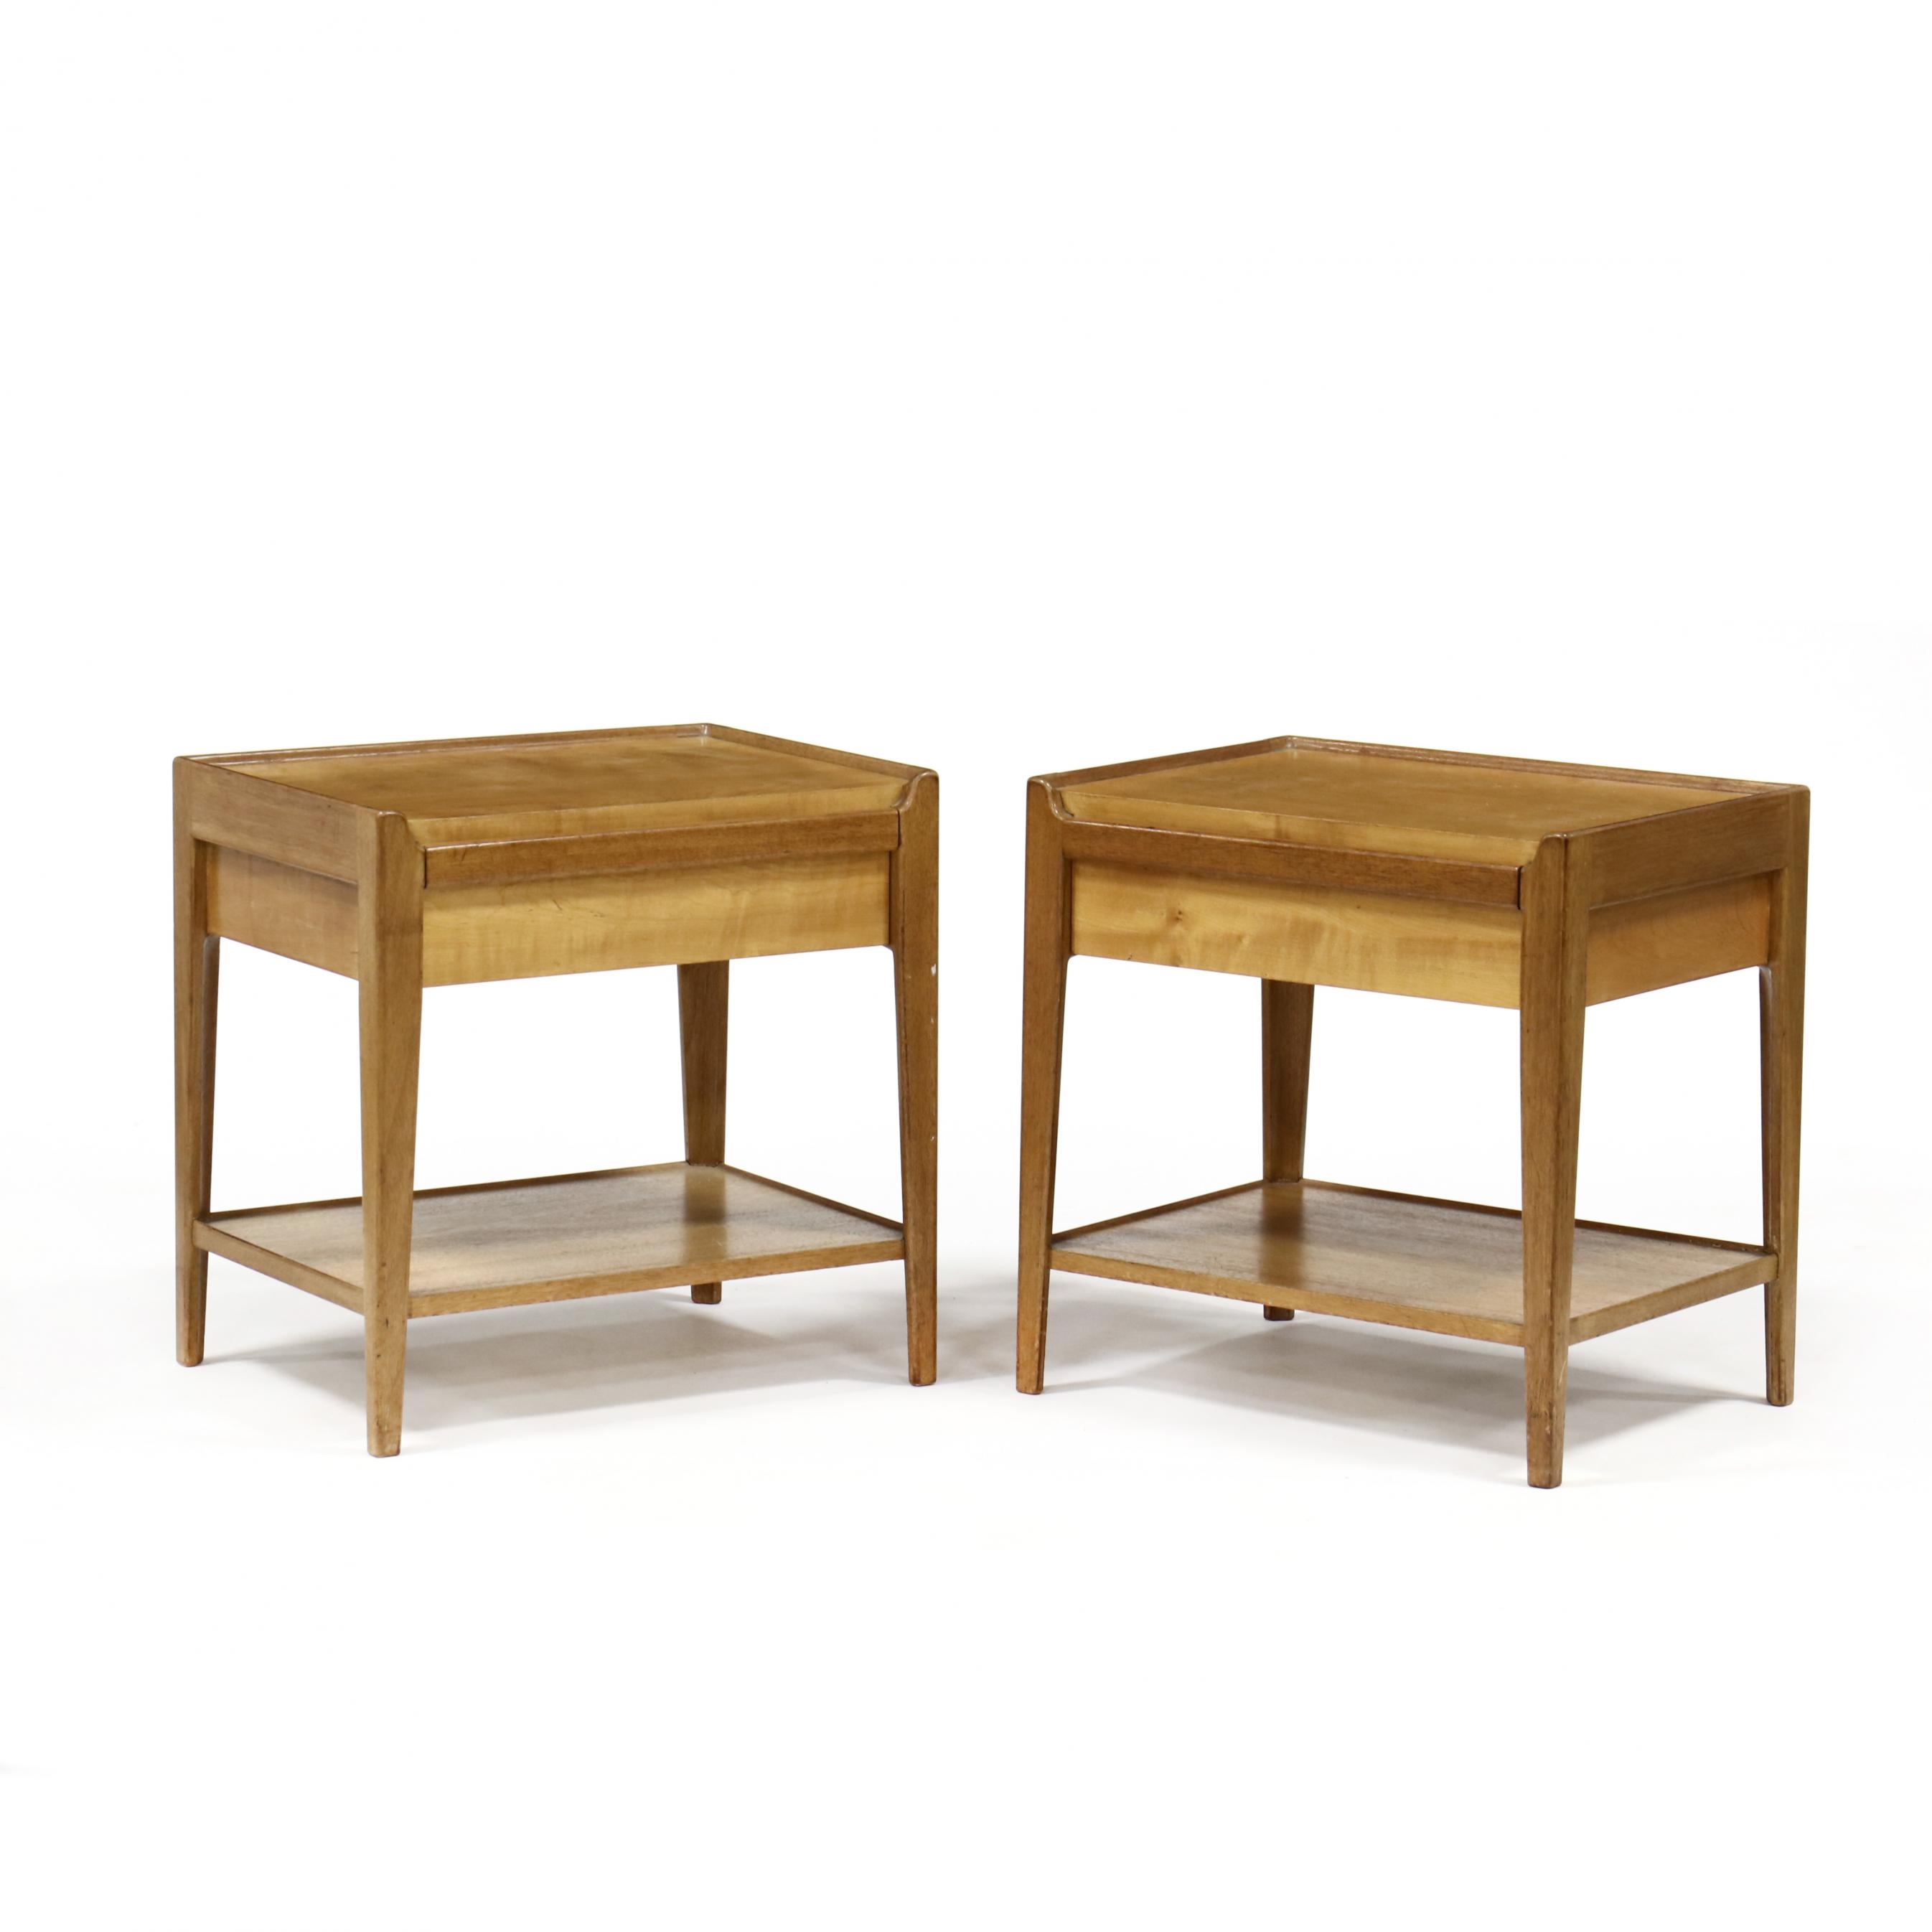 pair-of-mid-century-one-drawer-stands